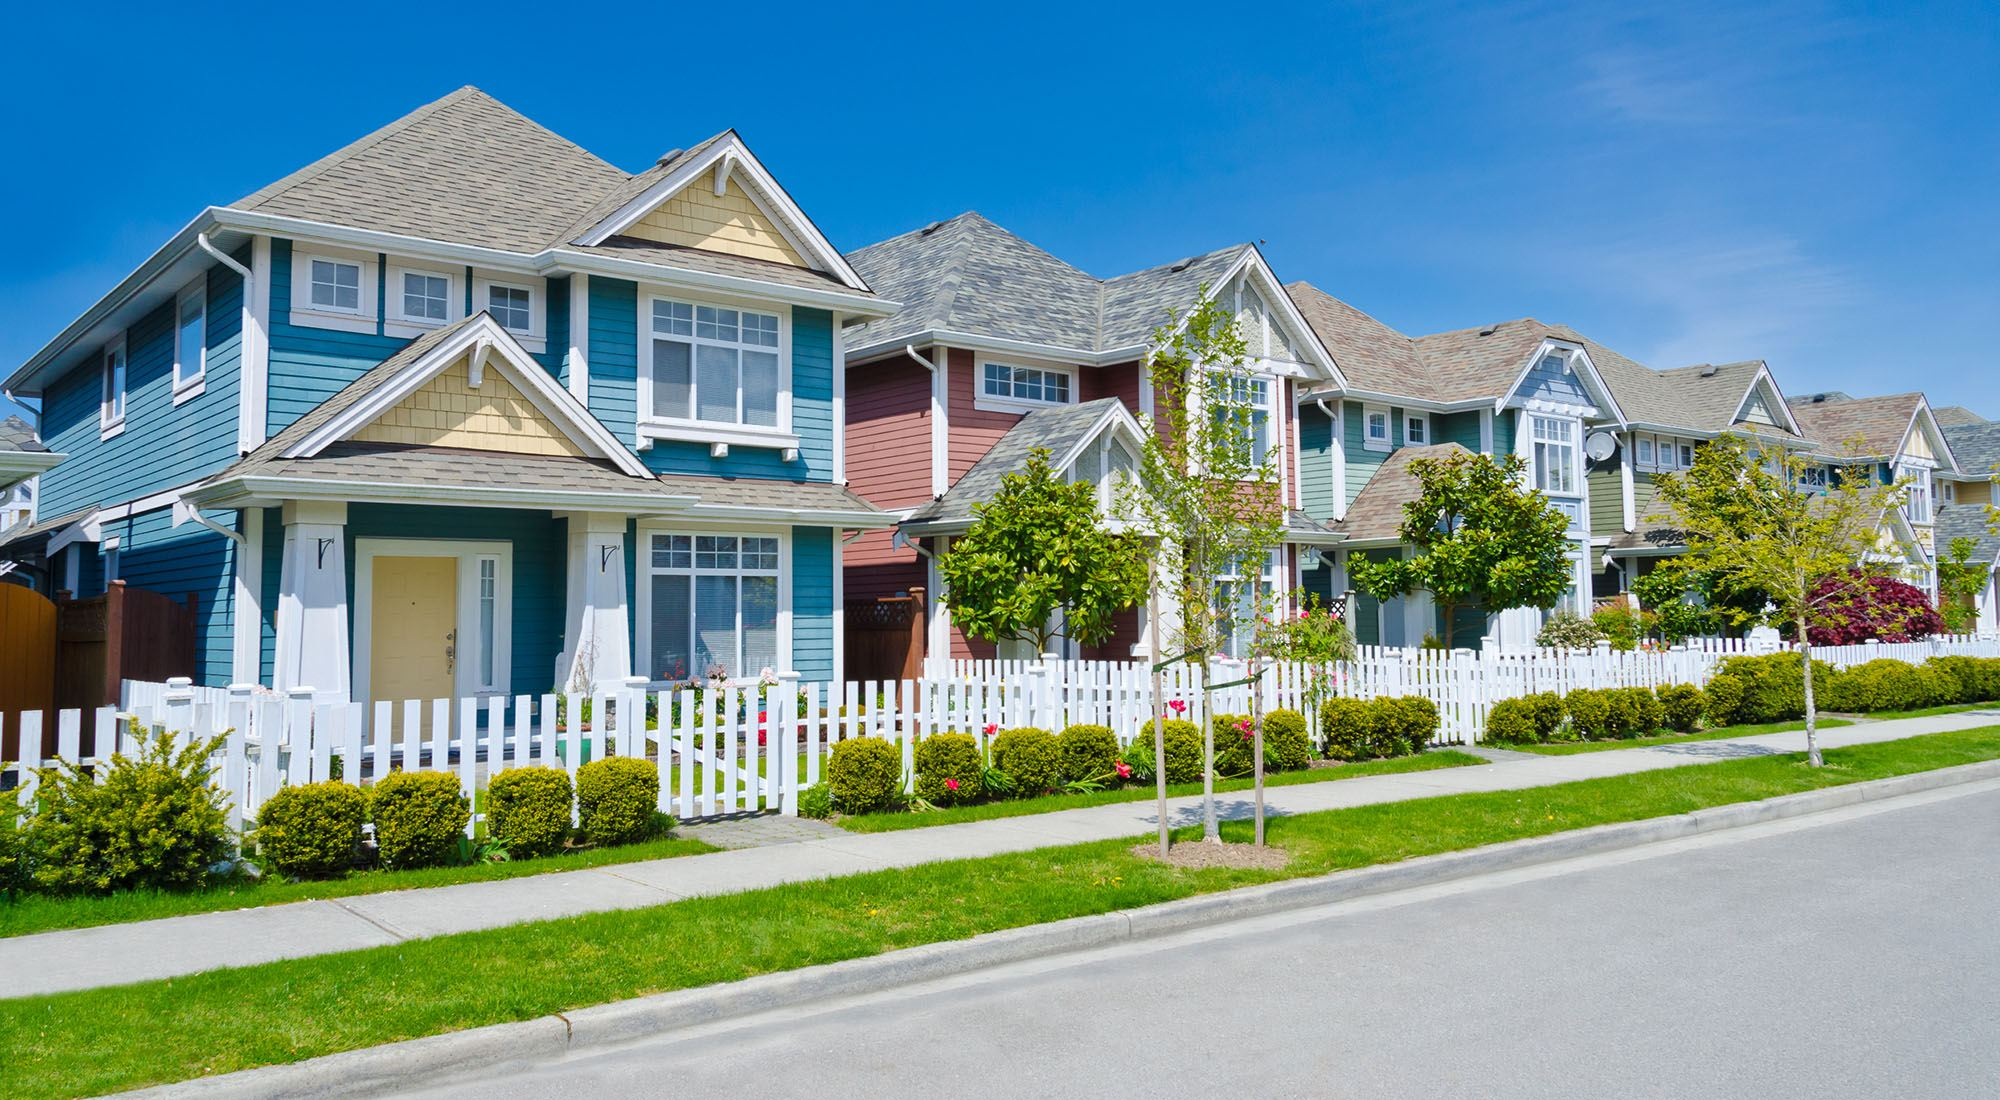 Real Estate In Vancouver Shutterstock